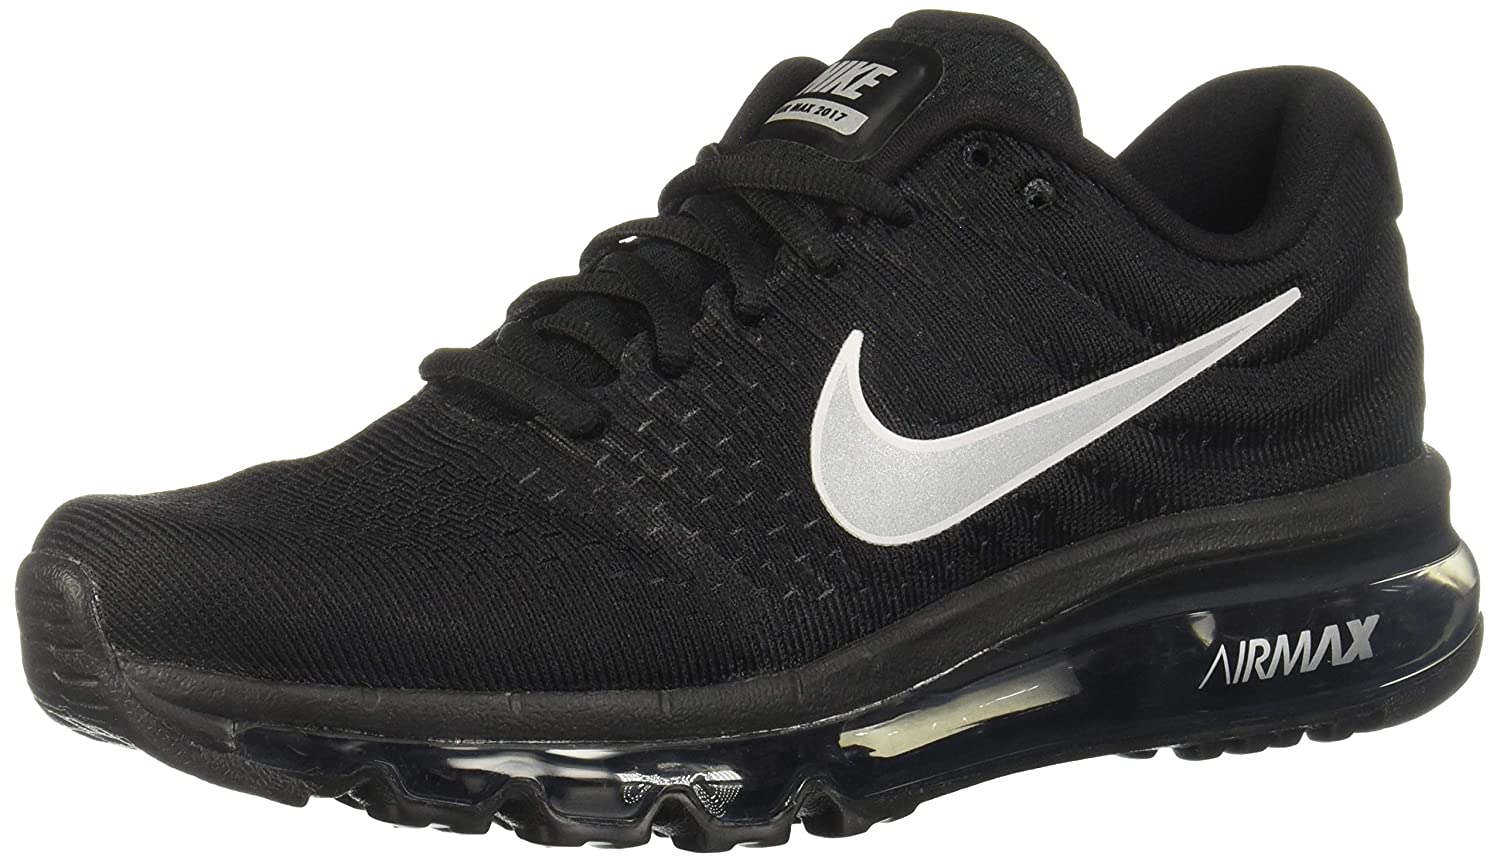 on sale 4e9fe a7946 Amazon.com   Nike Womens Air Max 2017 Running Shoes Black White Anthracite  849560-001 Size 10   Road Running